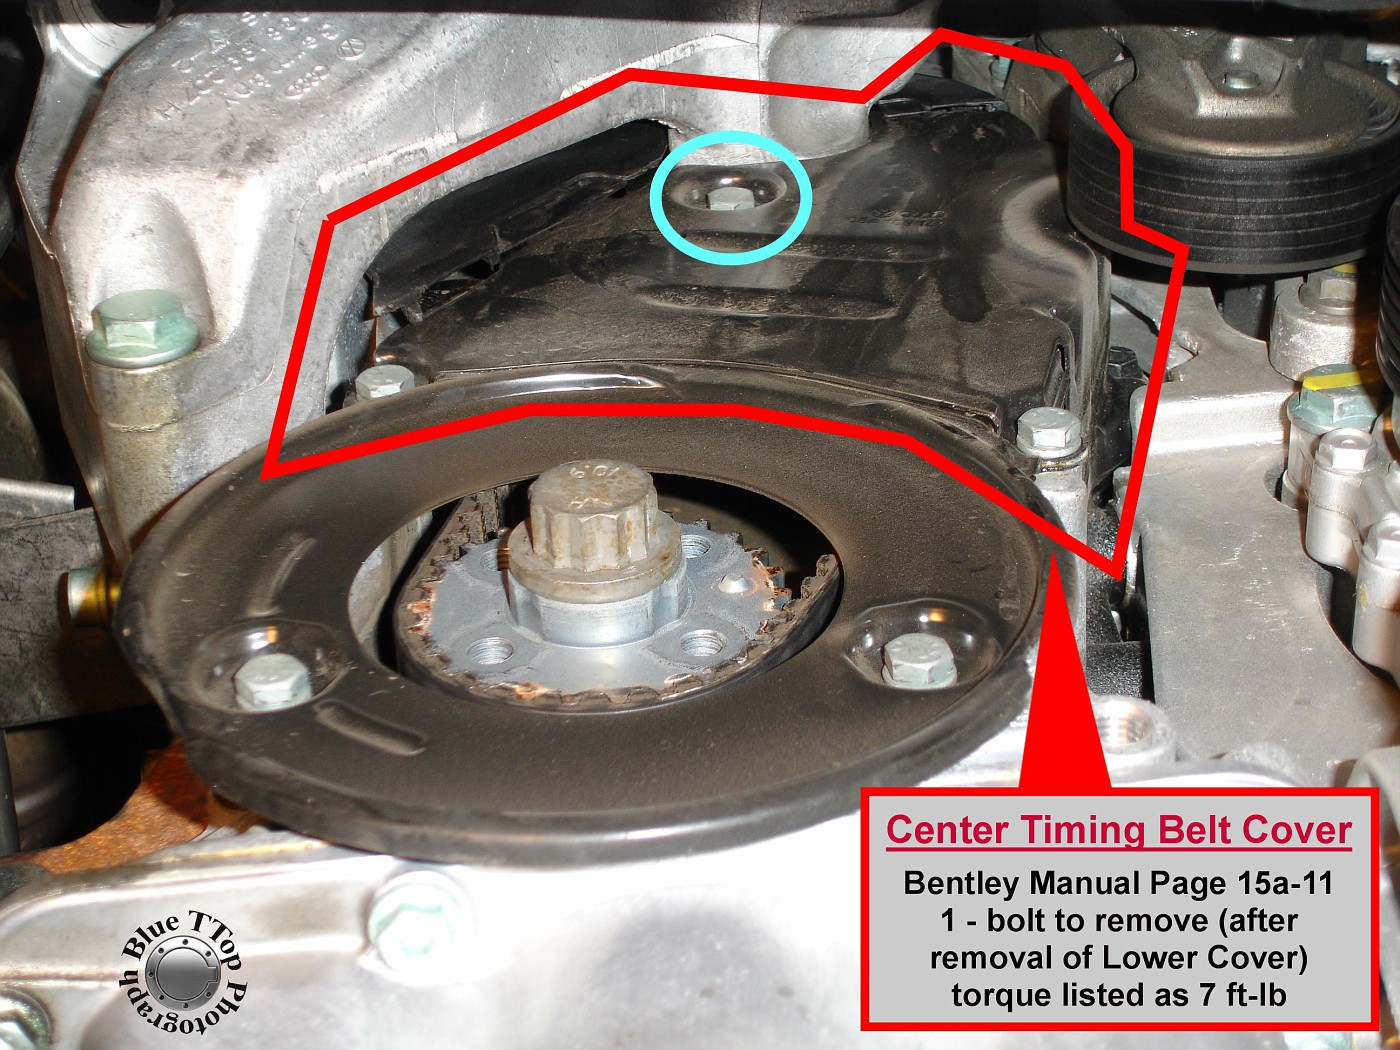 Timing Belt Replacement Writeup With 61 Pictures And 44 Steps Fix Car Dsc05860a Vi